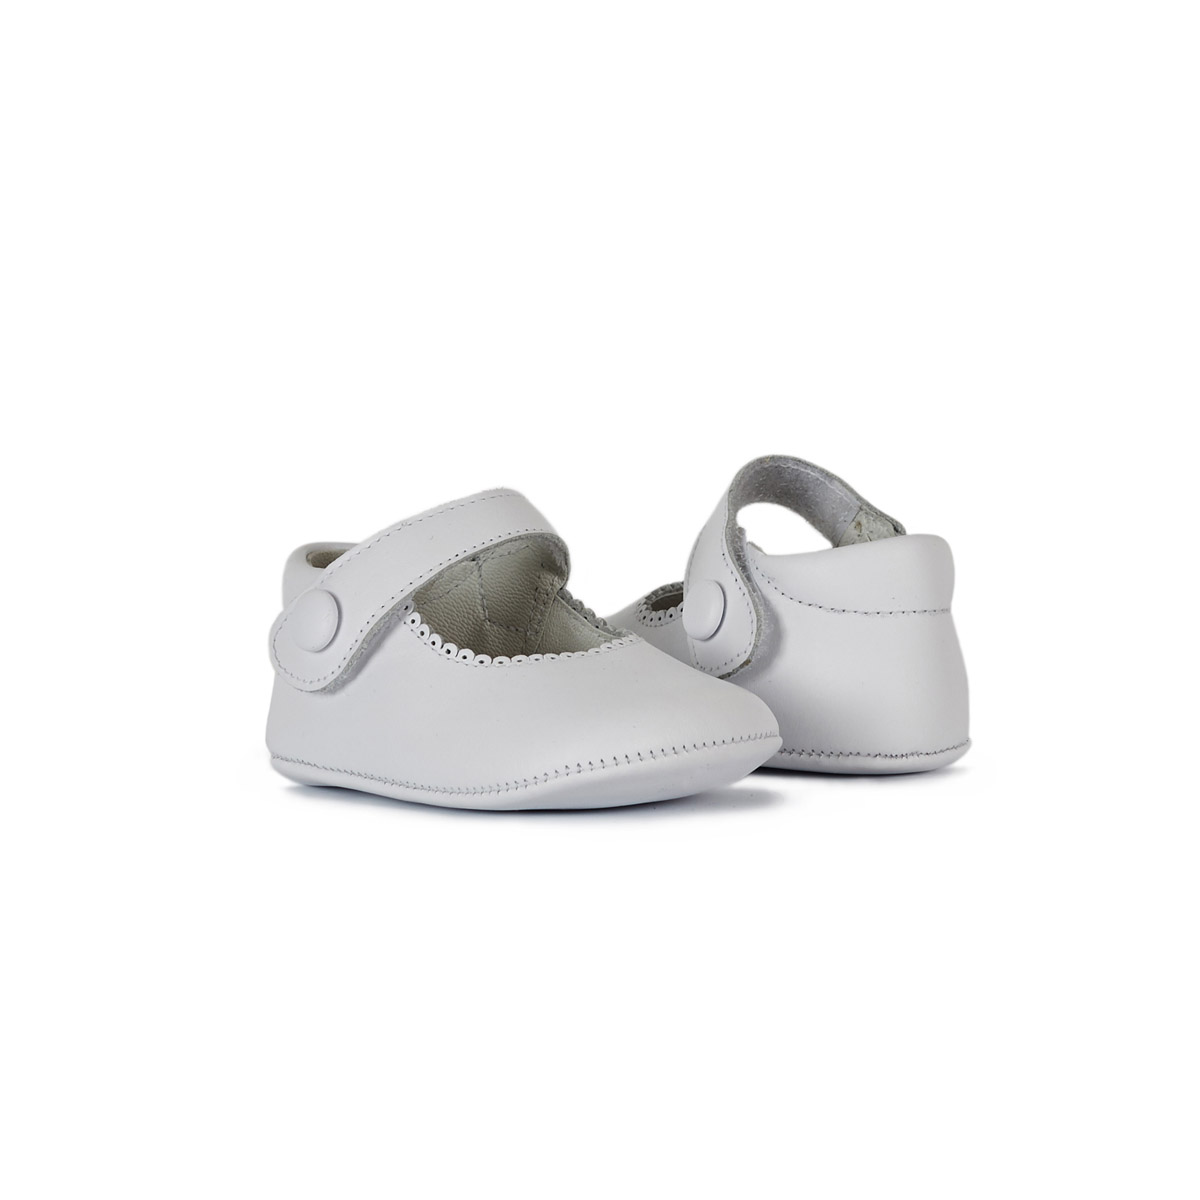 ChildrenChic Leather Mary Janes in White